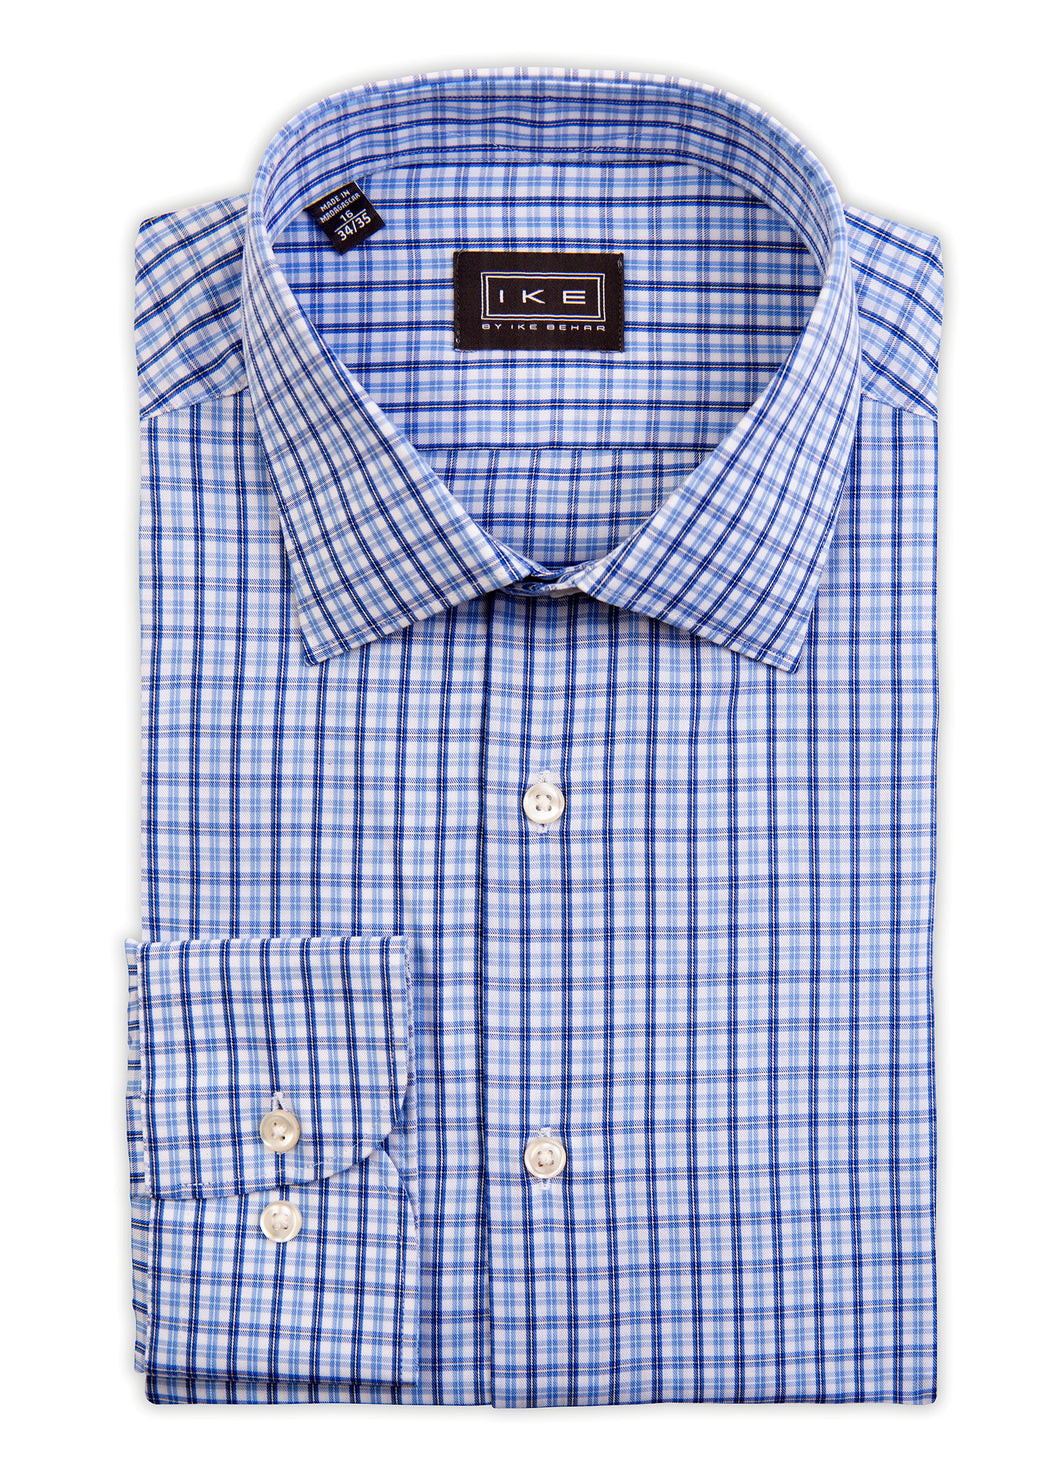 Blue on Blue Multi-Check Ike by Ike Behar Dress Shirt